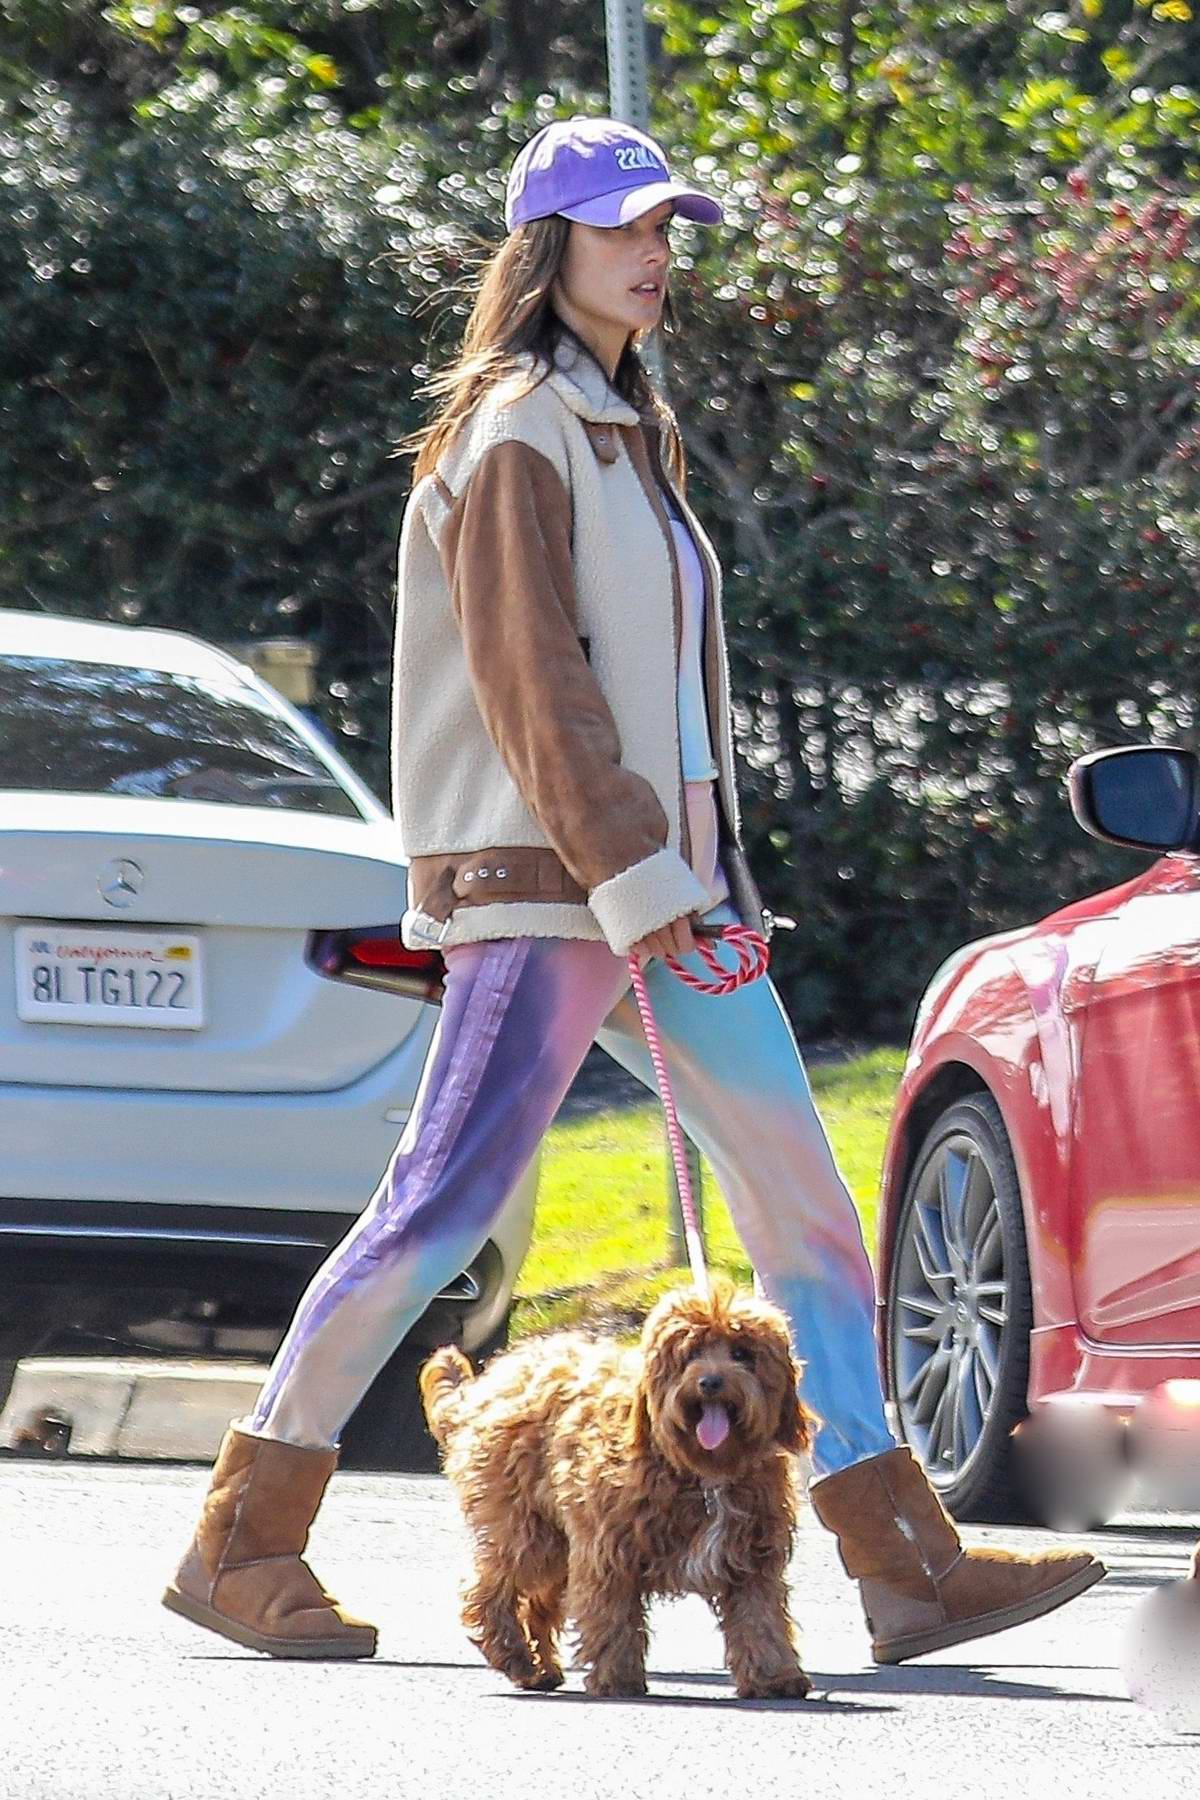 Alessandra Ambrosio dons a colorful tie-dye outfit while out for a walk with her dog on Easter in Santa Monica, California